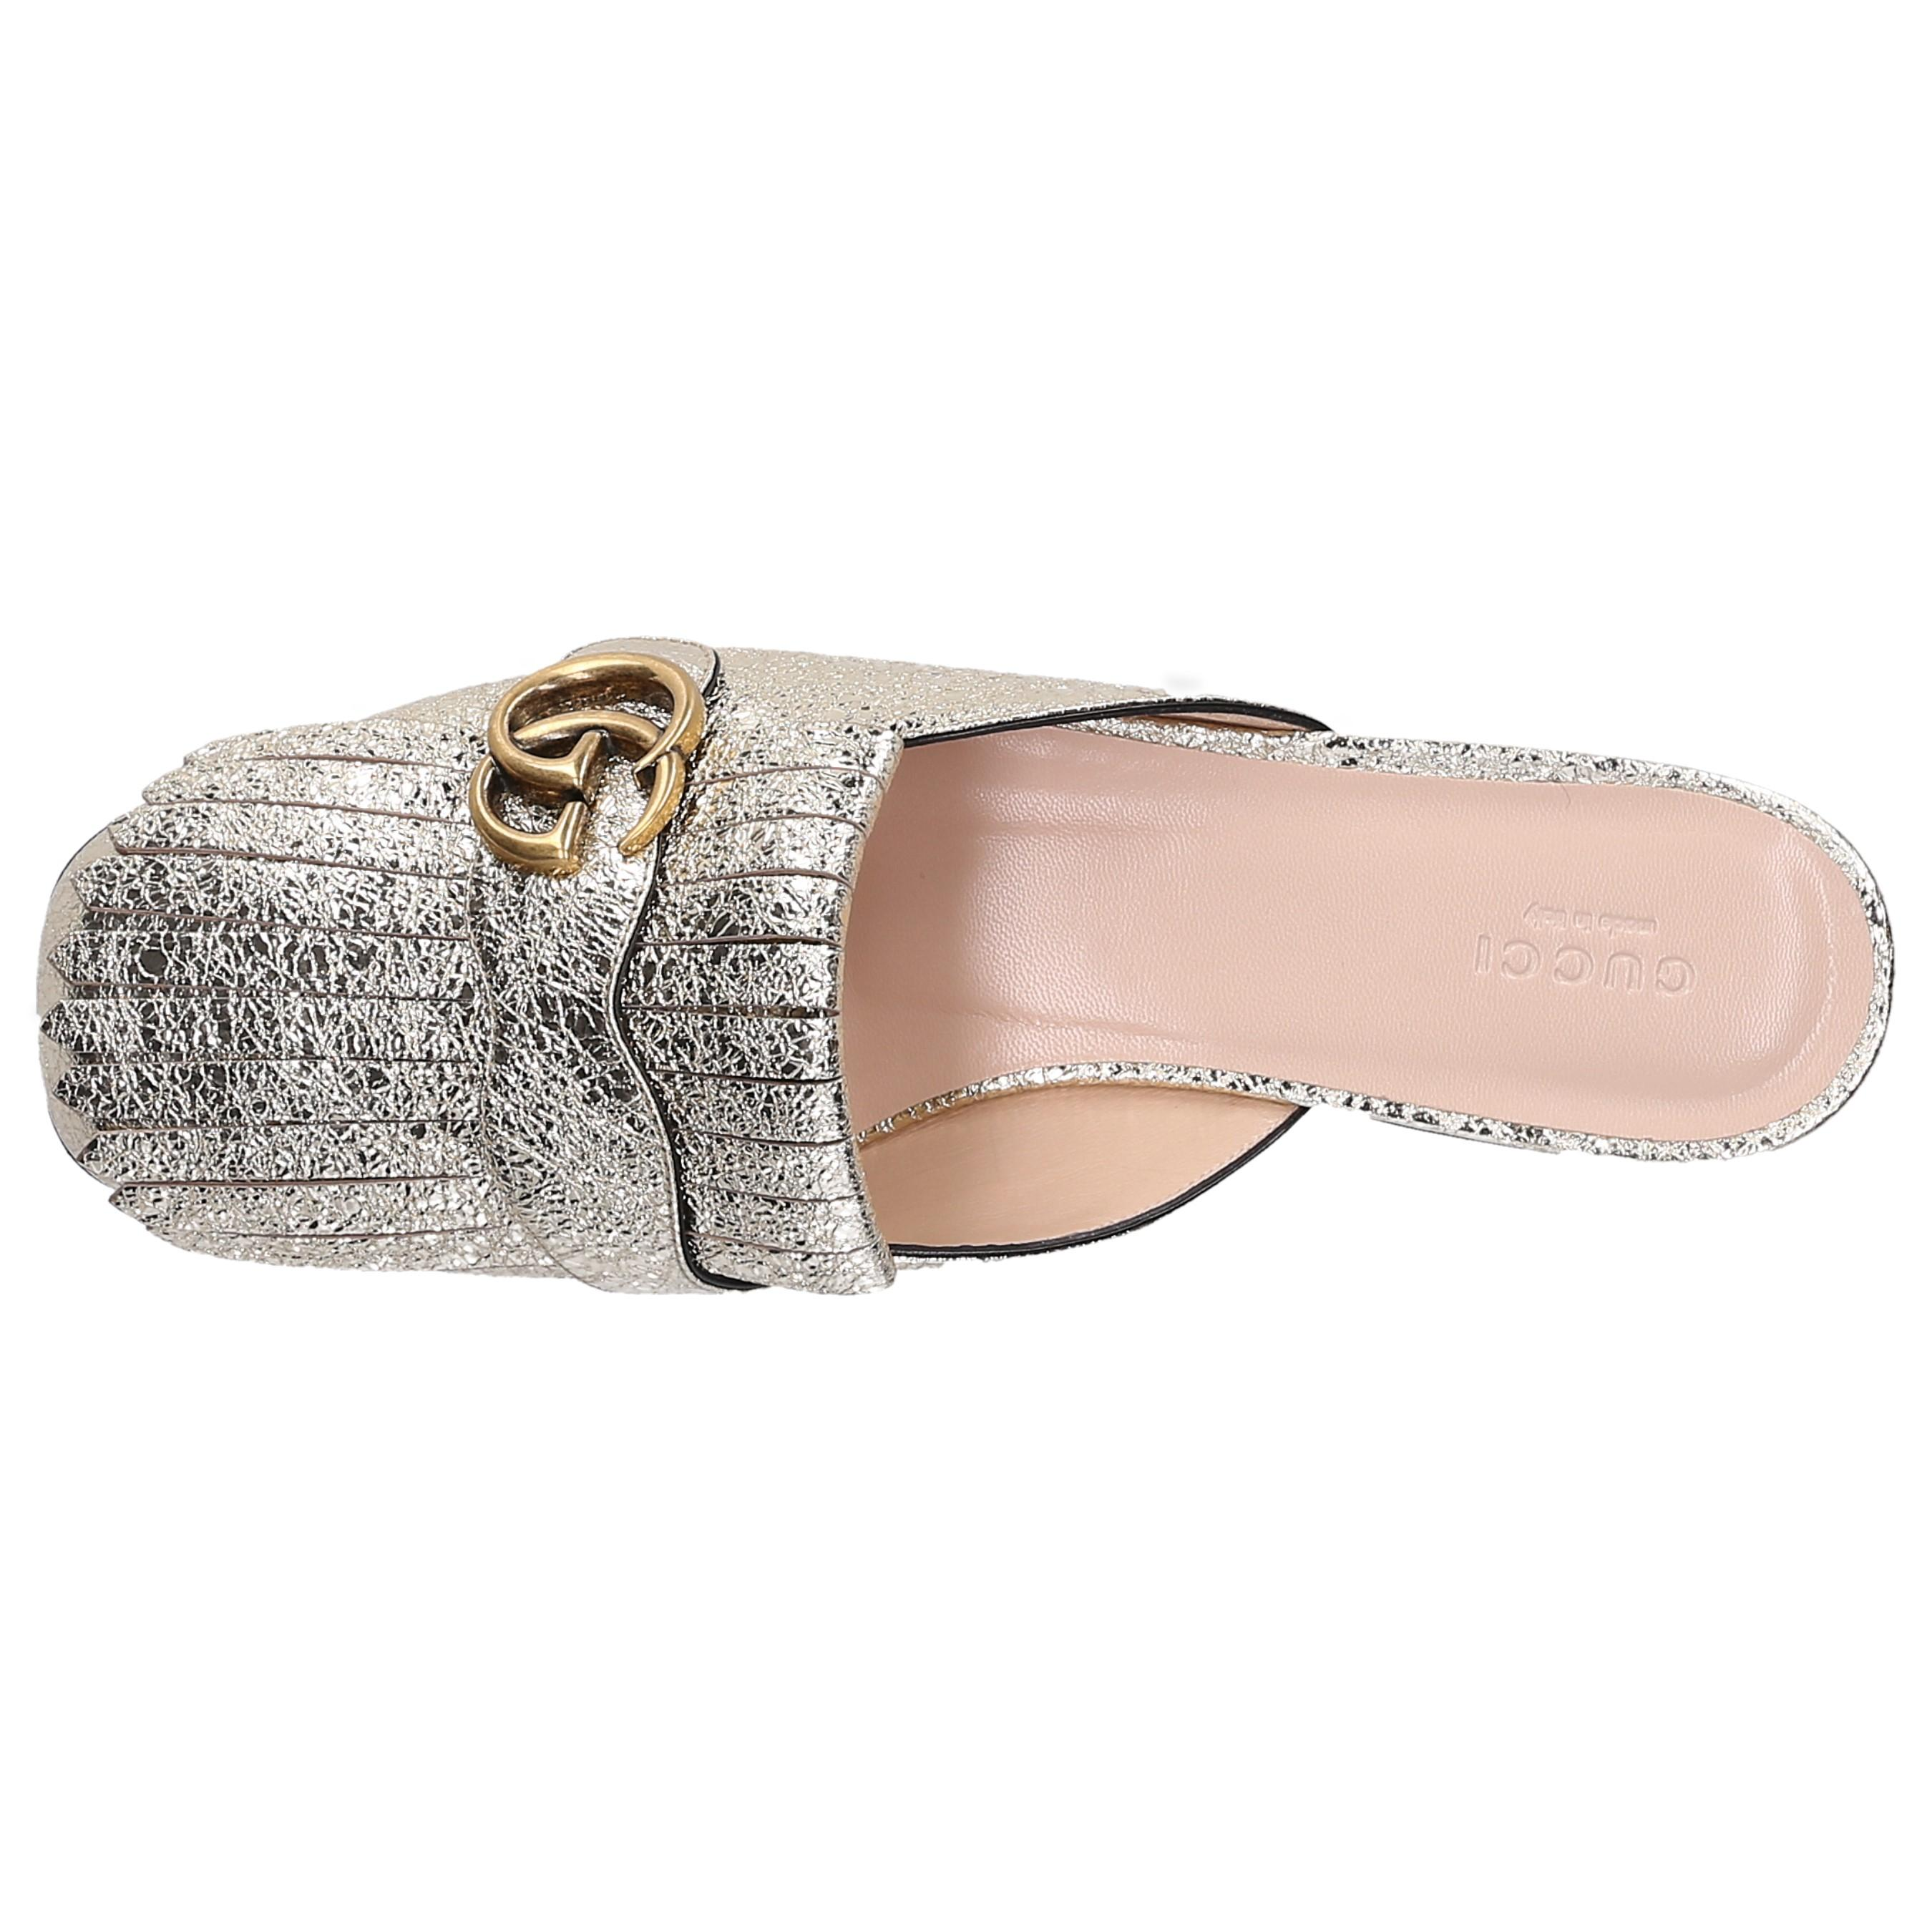 98c824393 Gucci - Metallic Slip On Shoes Dkt00 Smooth Leather Embossing Tassel Gold -  Lyst. View fullscreen